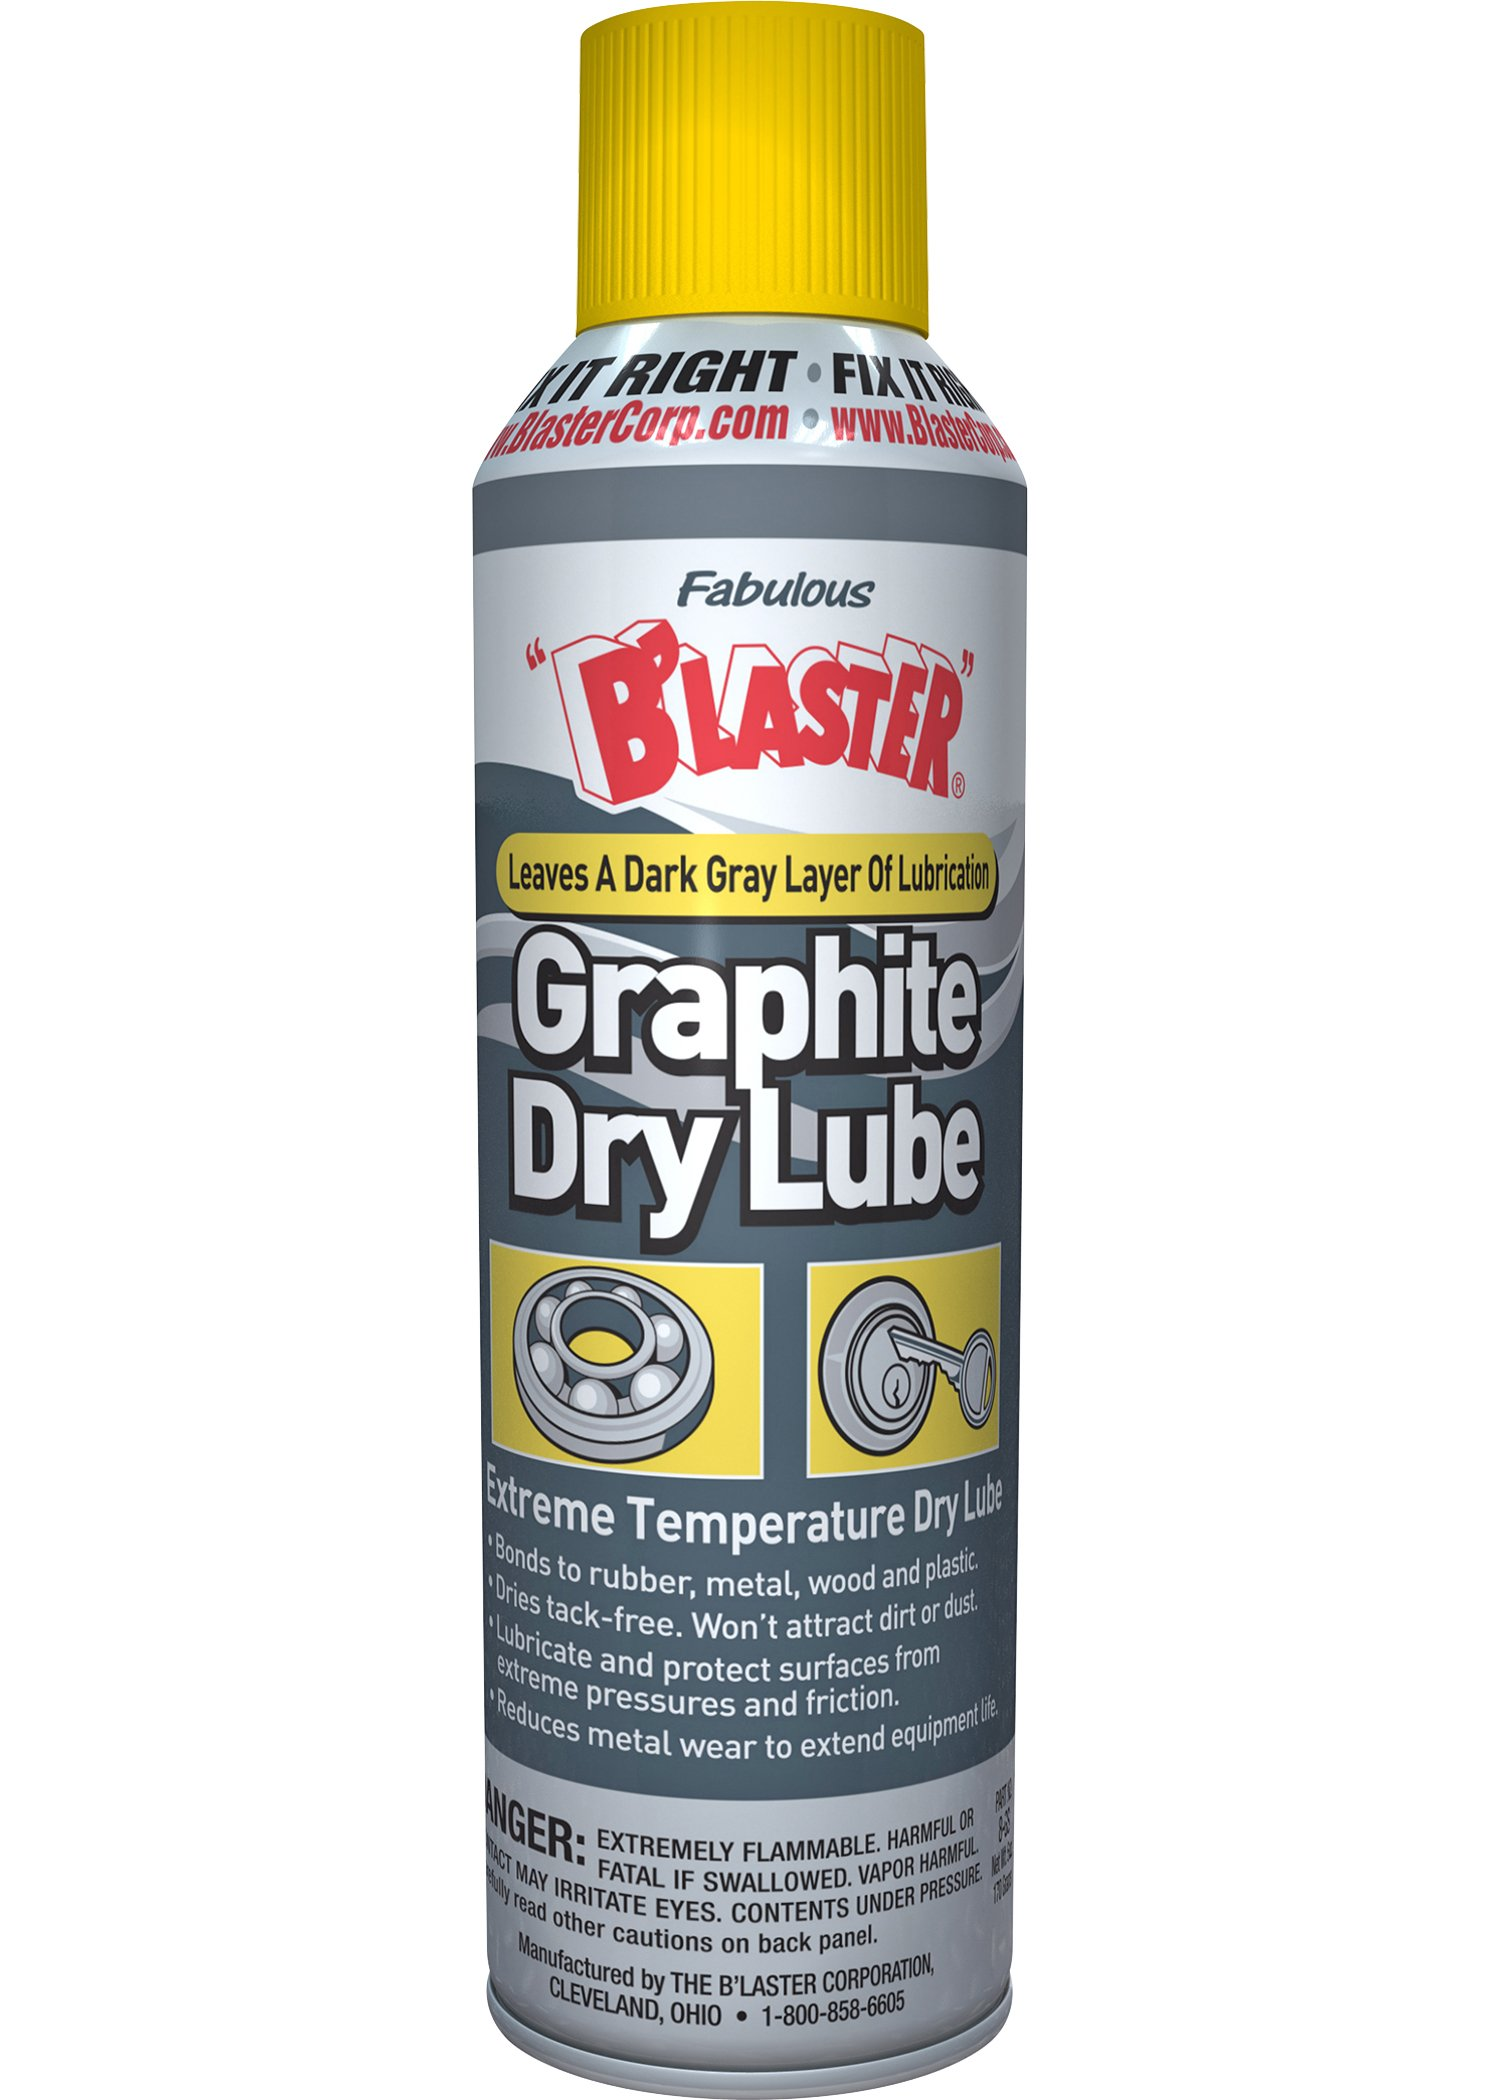 B'laster 8-GS-12PK Industrial Graphite Dry Lubricant - 5.5-Ounces - Case of 12 by B'laster